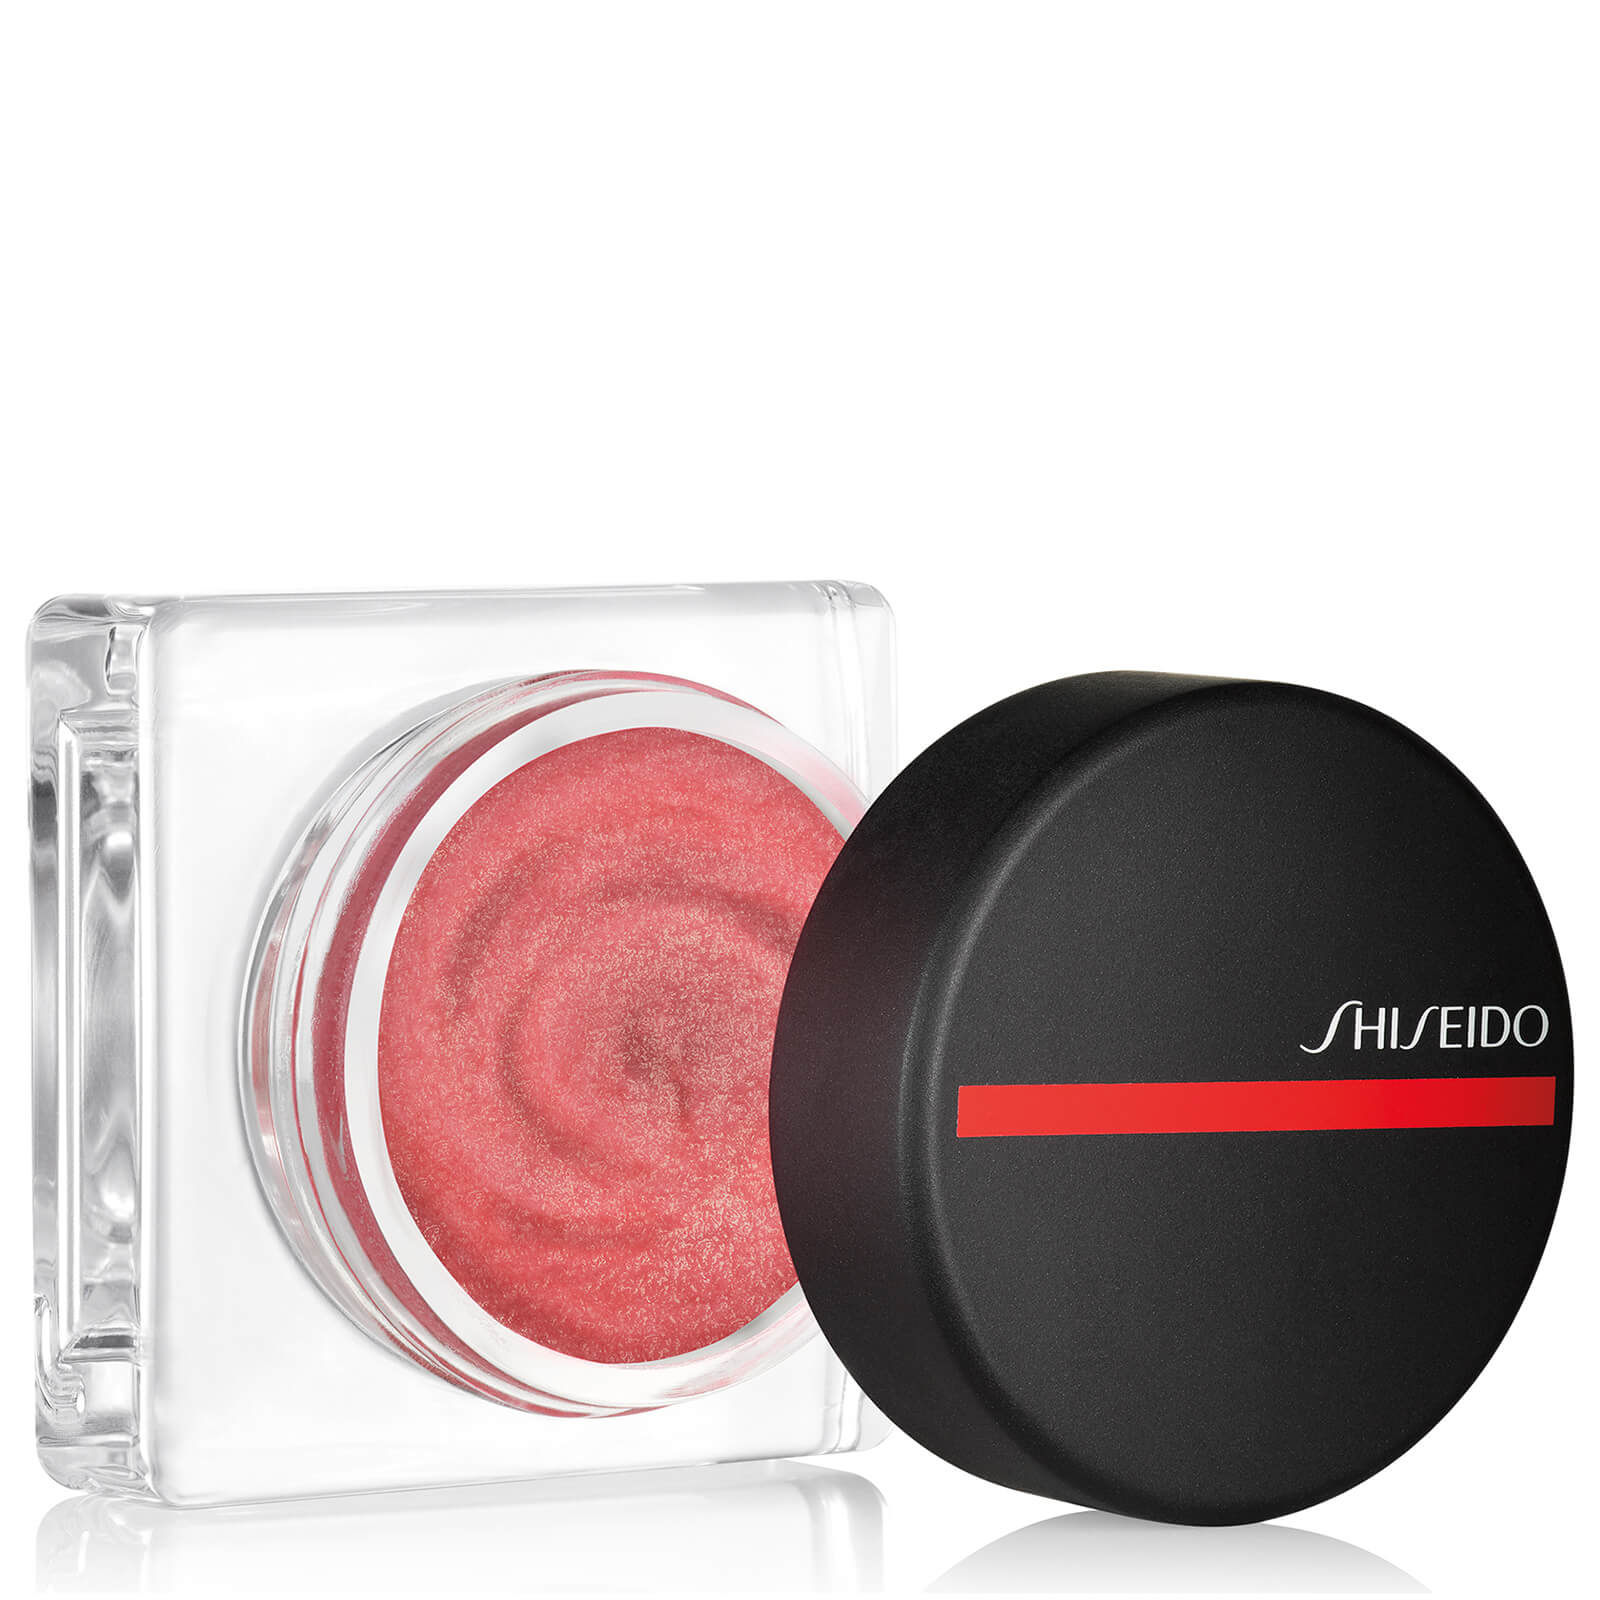 Shiseido Minimalist Whipped Powder Blush (Various Shades)